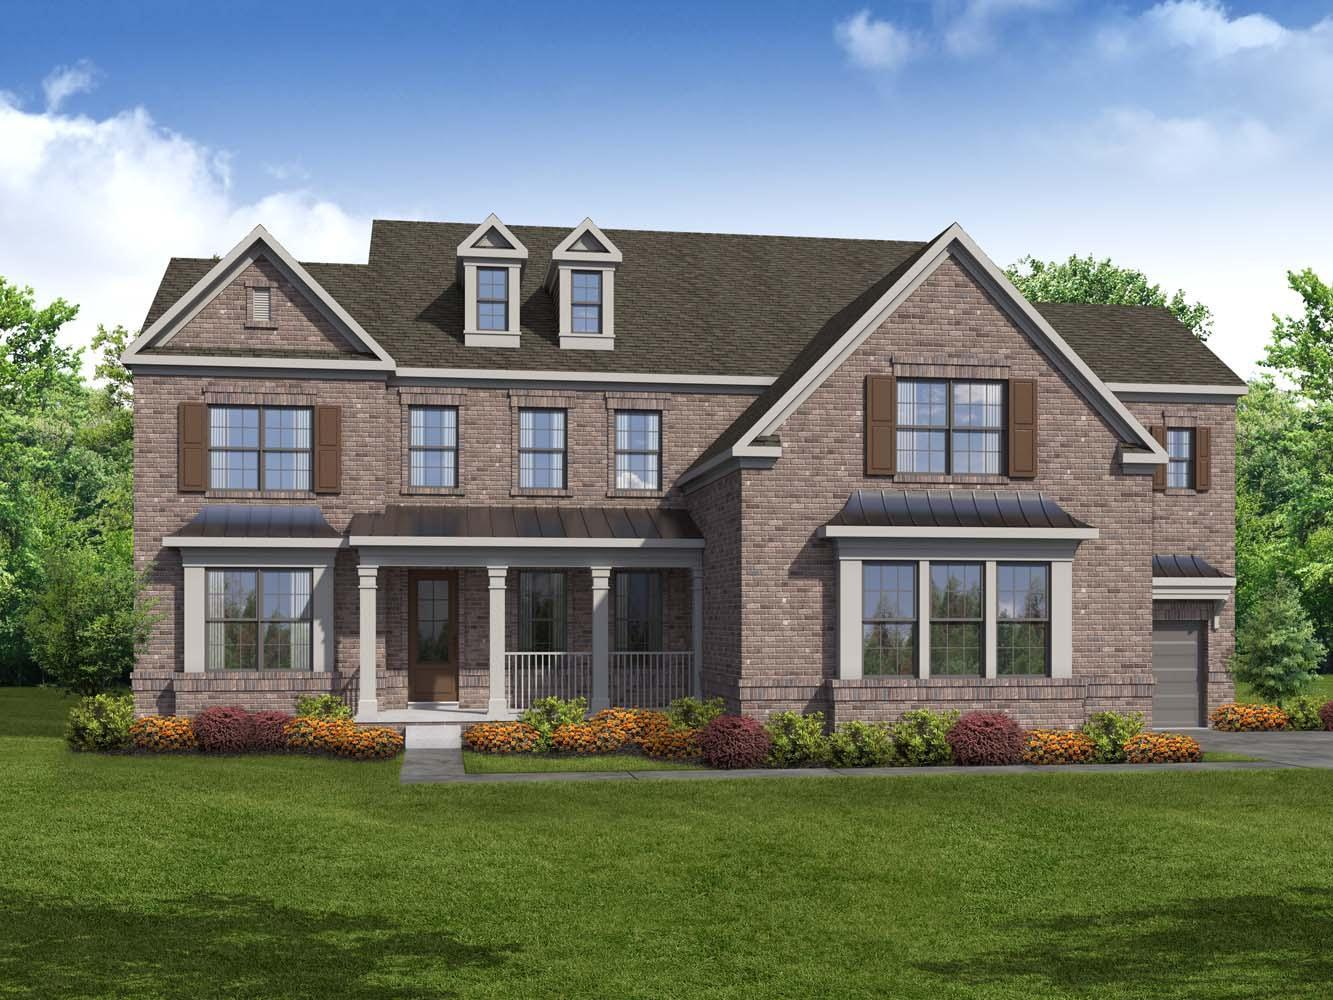 The Sheffield by Chafin Communities